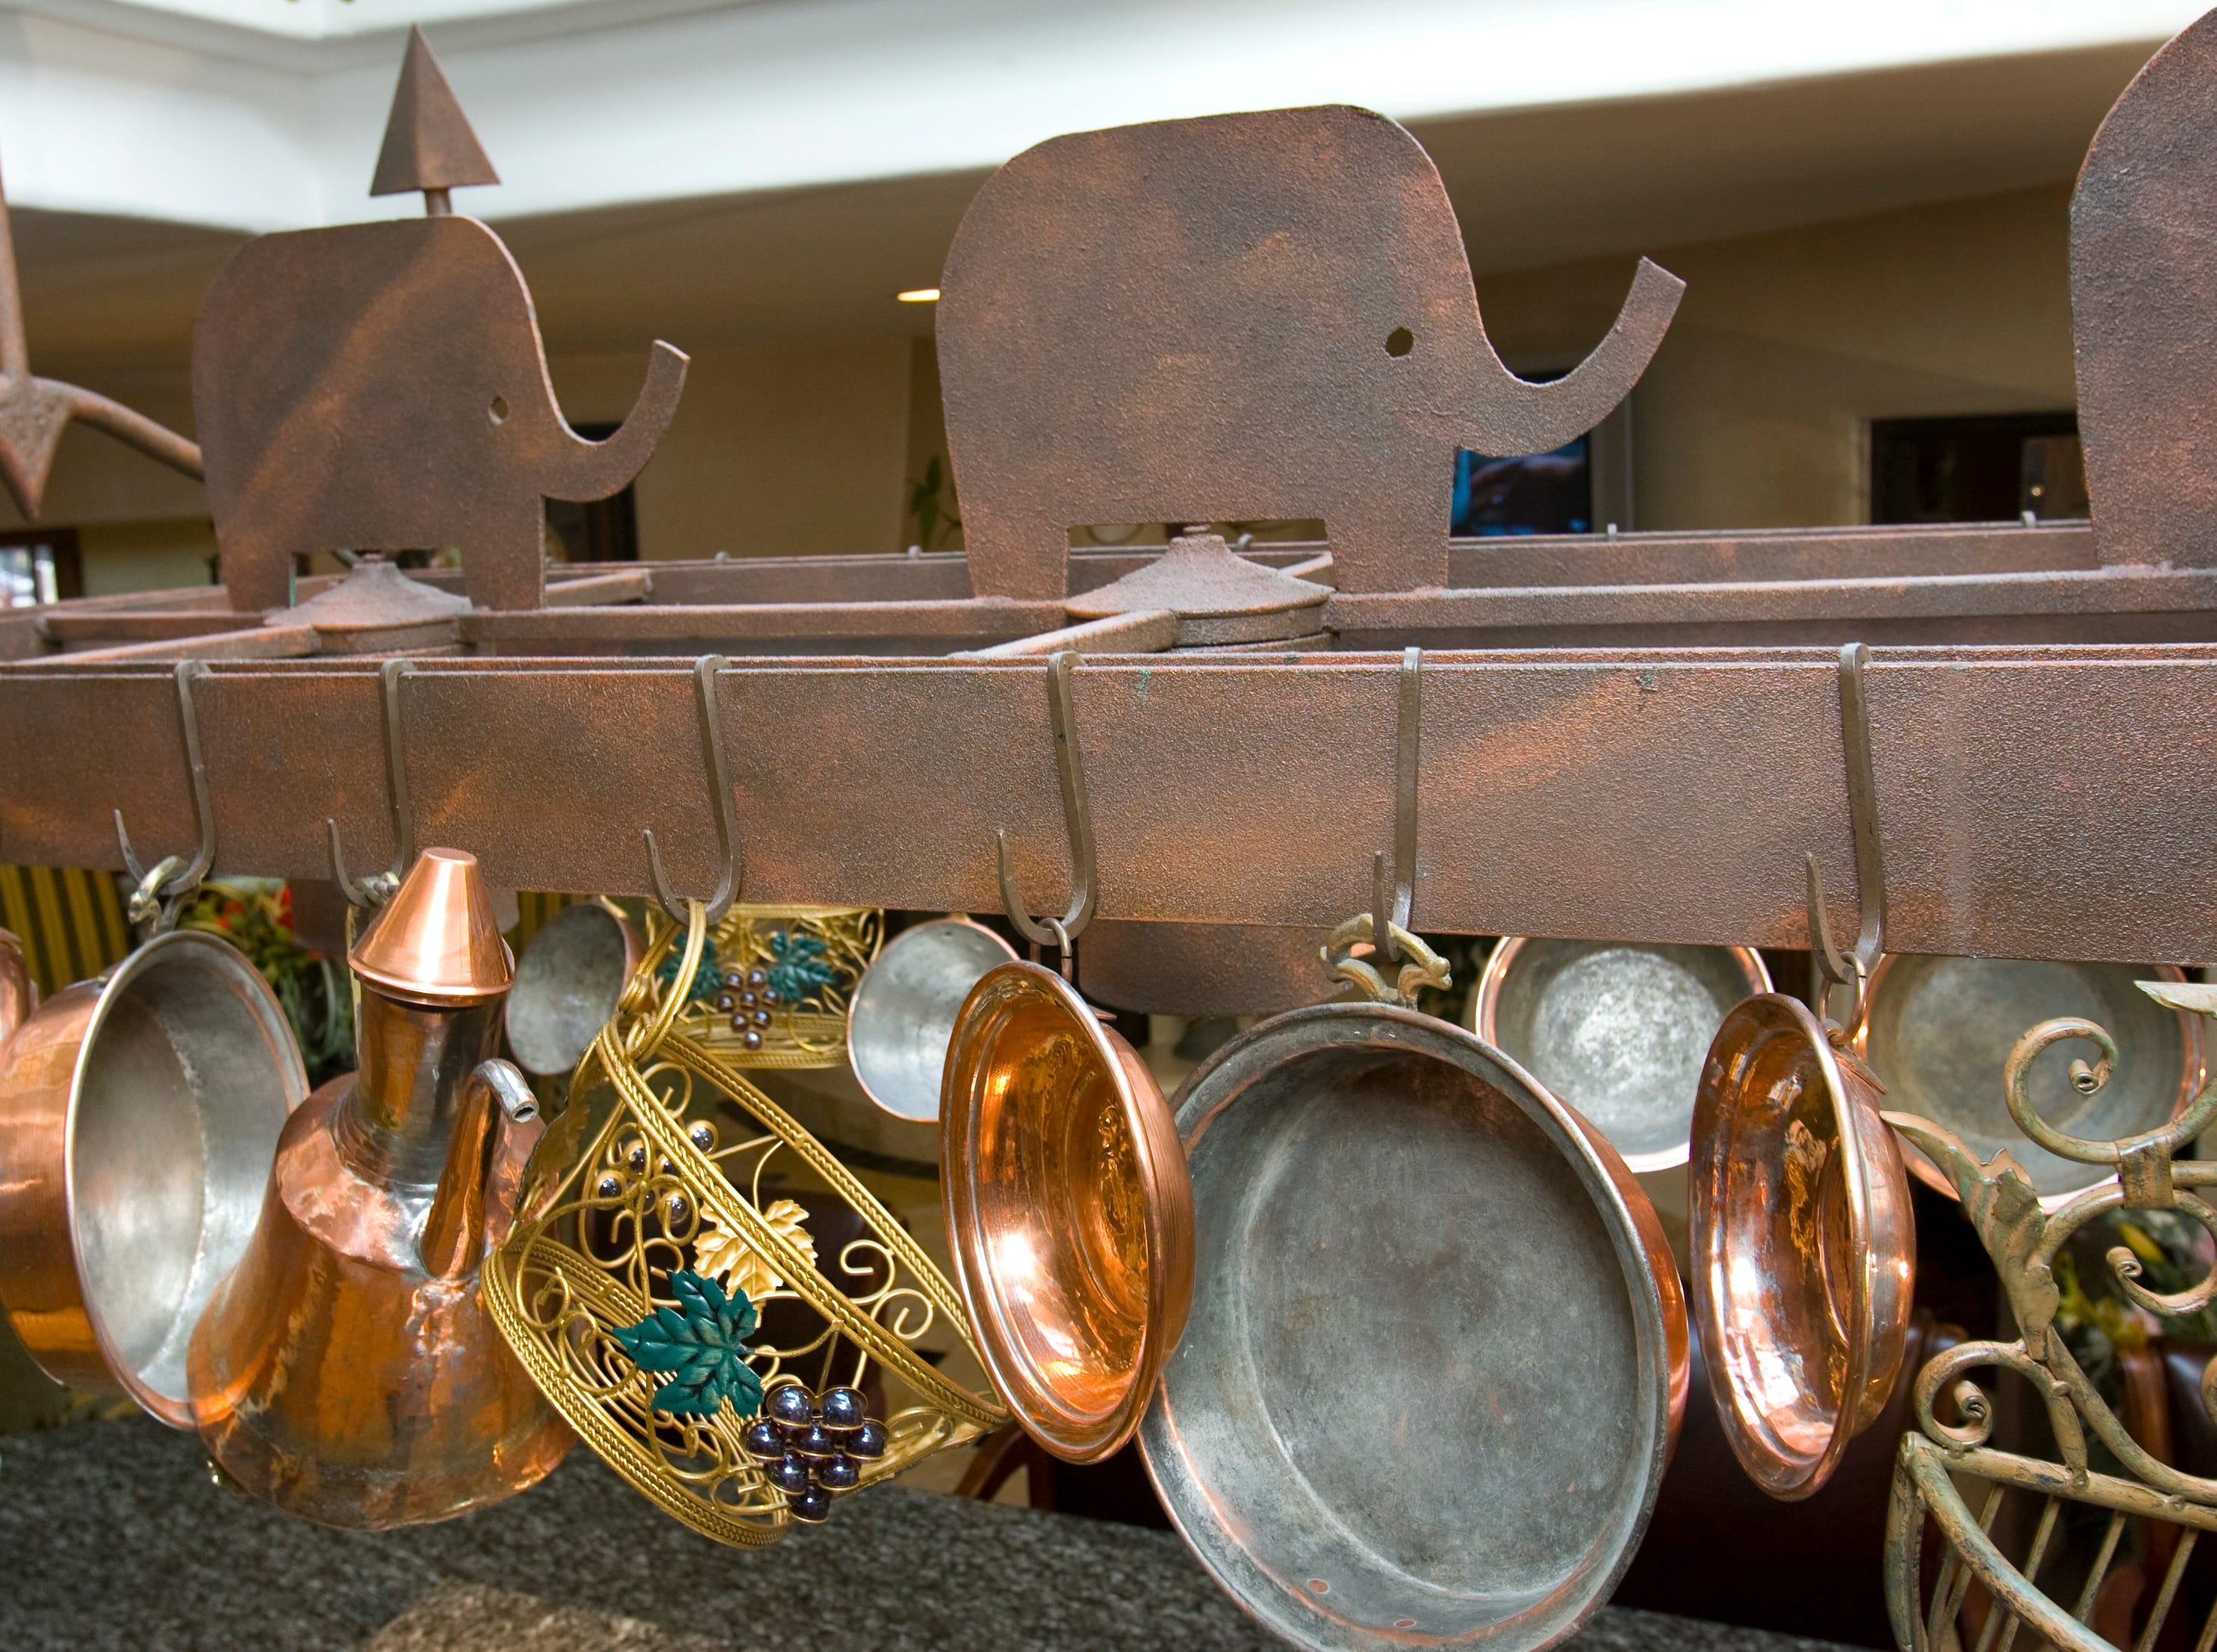 The kitchen island pot holder in the former home of Sen. John and Cindy McCain, seen here in 2008, still shows the GOP elephant symbols and ship anchors to commemorate John's military service.